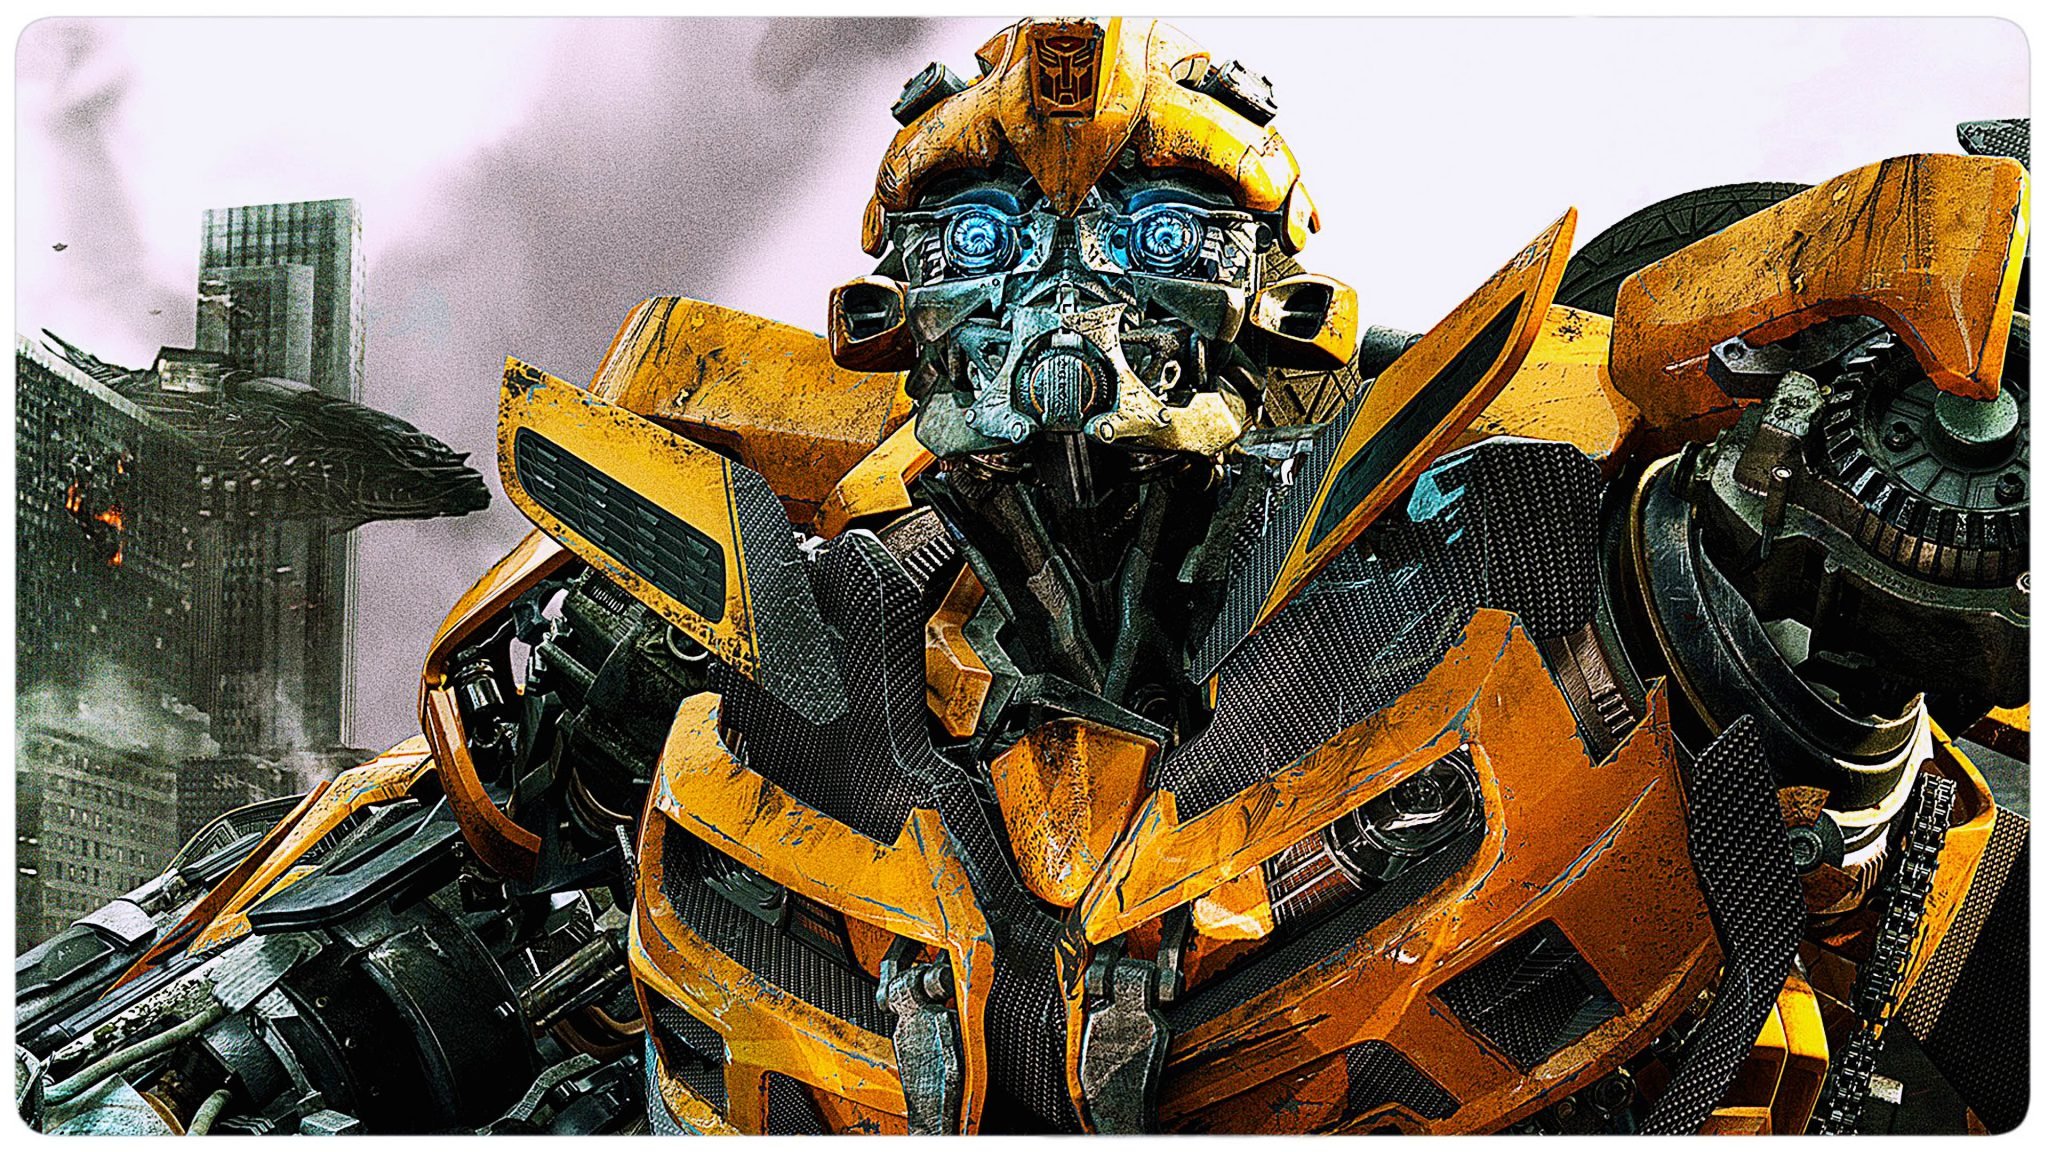 Michael Bay reveals Bumblebee's new look in Transformers- The Last Knight